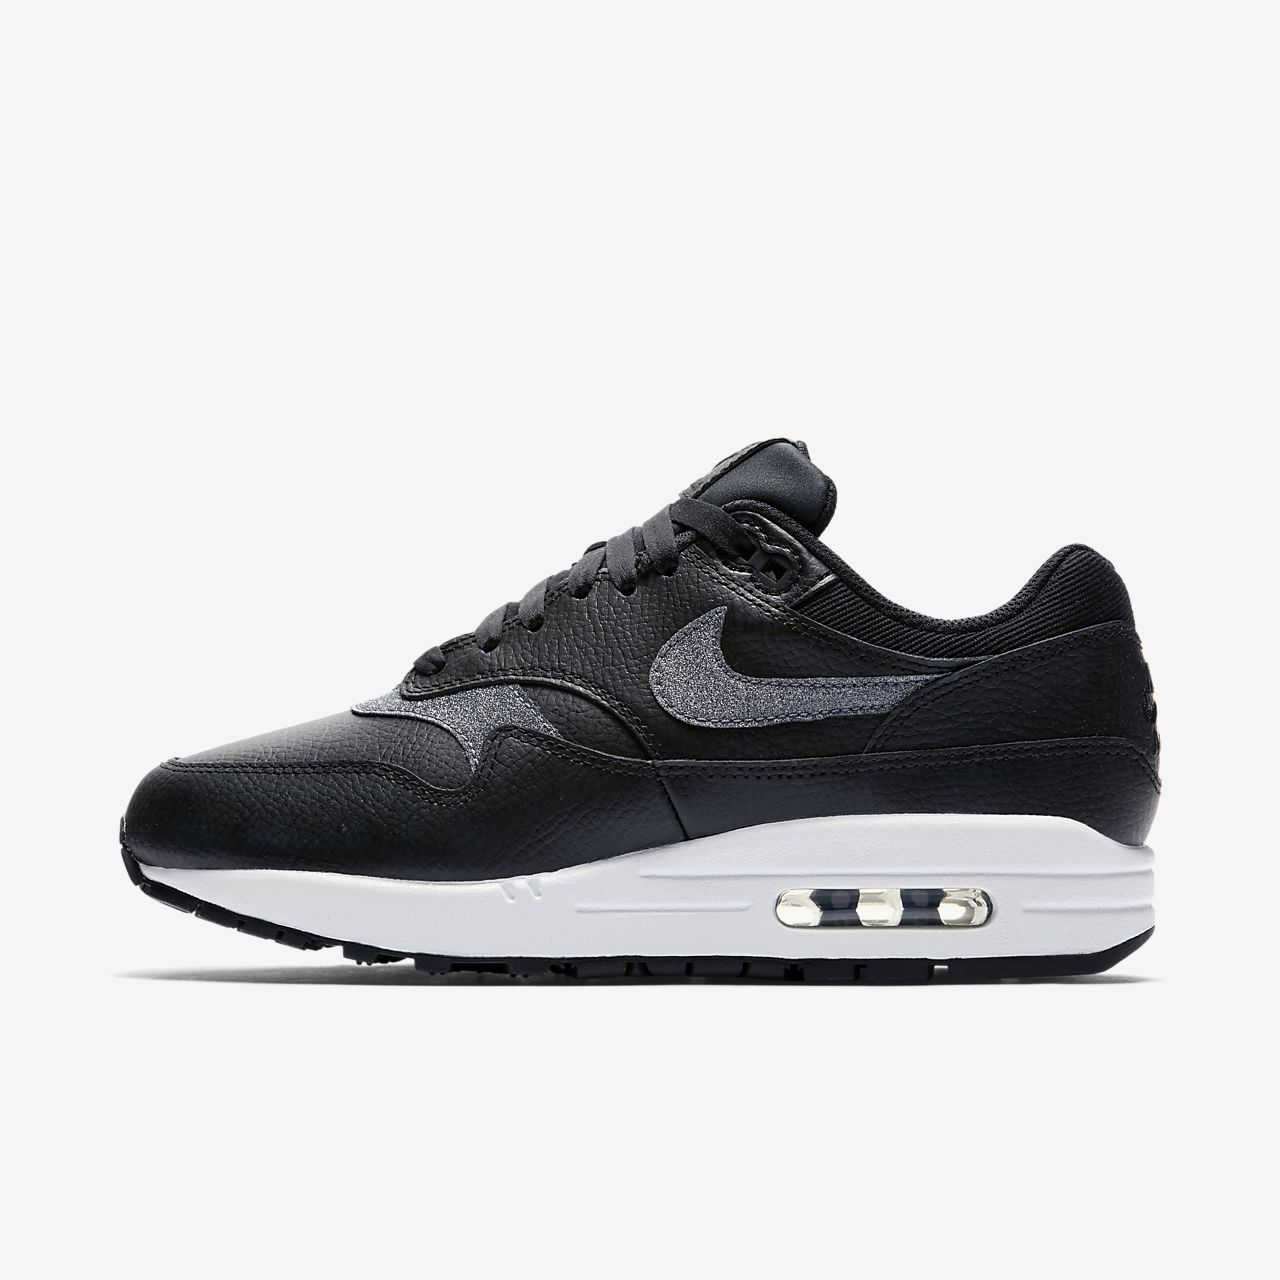 buy popular 47765 9ea78 ... Chaussure Nike Air Max 1 SE Glitter pour Femme